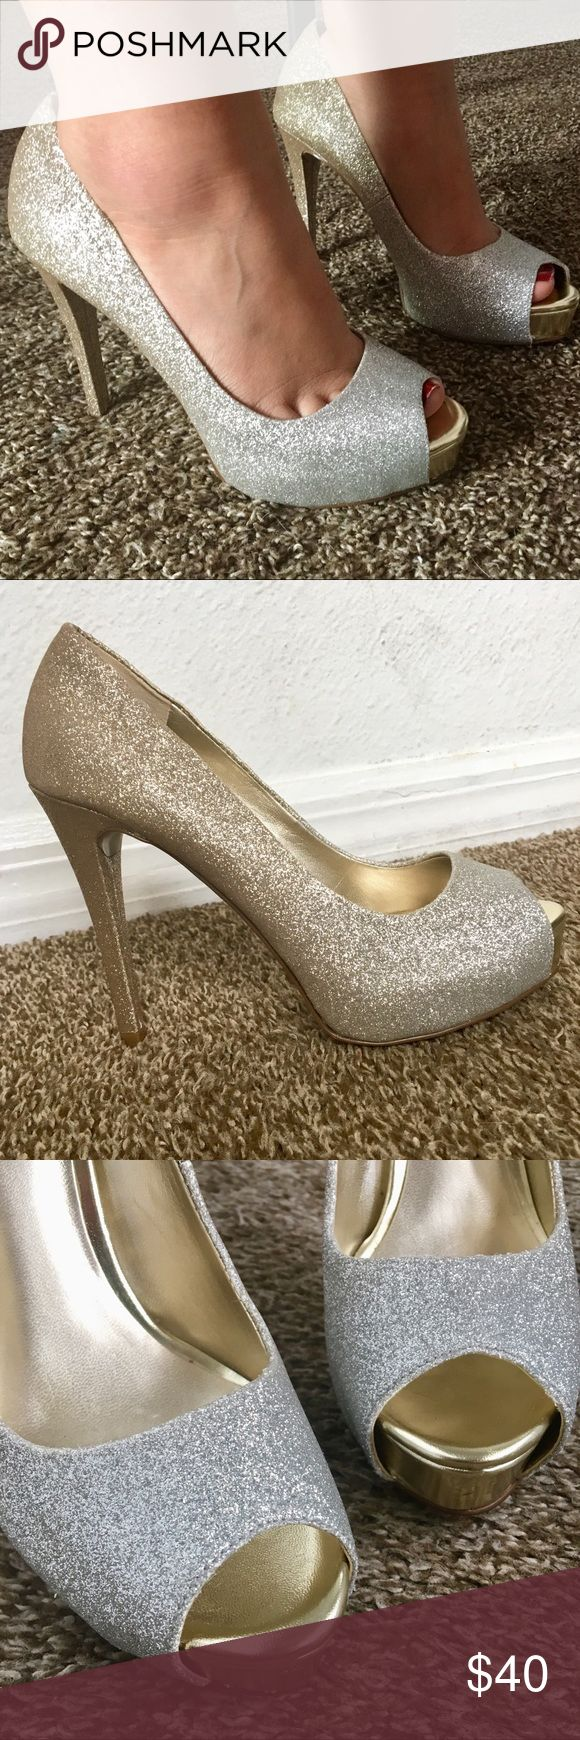 A.N.A Beautiful Gold Fade to Silver Glitter Heels These shoes are absolutely beautiful - A.N.A Gold To Silver Glitter Heels with Peep Toe - Heels Only Worn Once for less then 3 hours & Are In New To Excellent Used Condition! Size 5.5 M a.n.a Shoes Heels #GlitterHeels